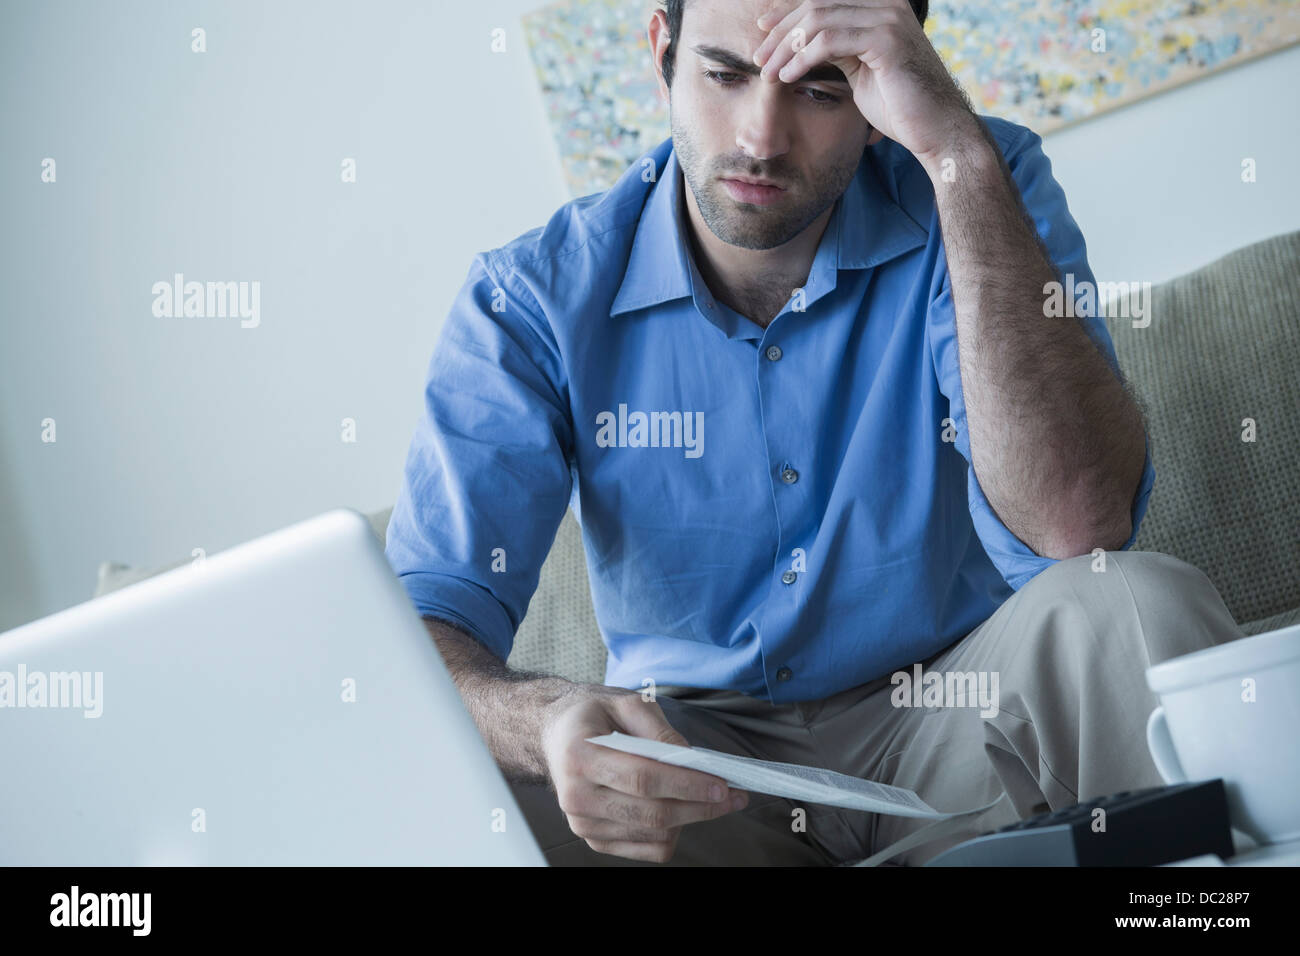 Worried man with hand on head holding bills - Stock Image